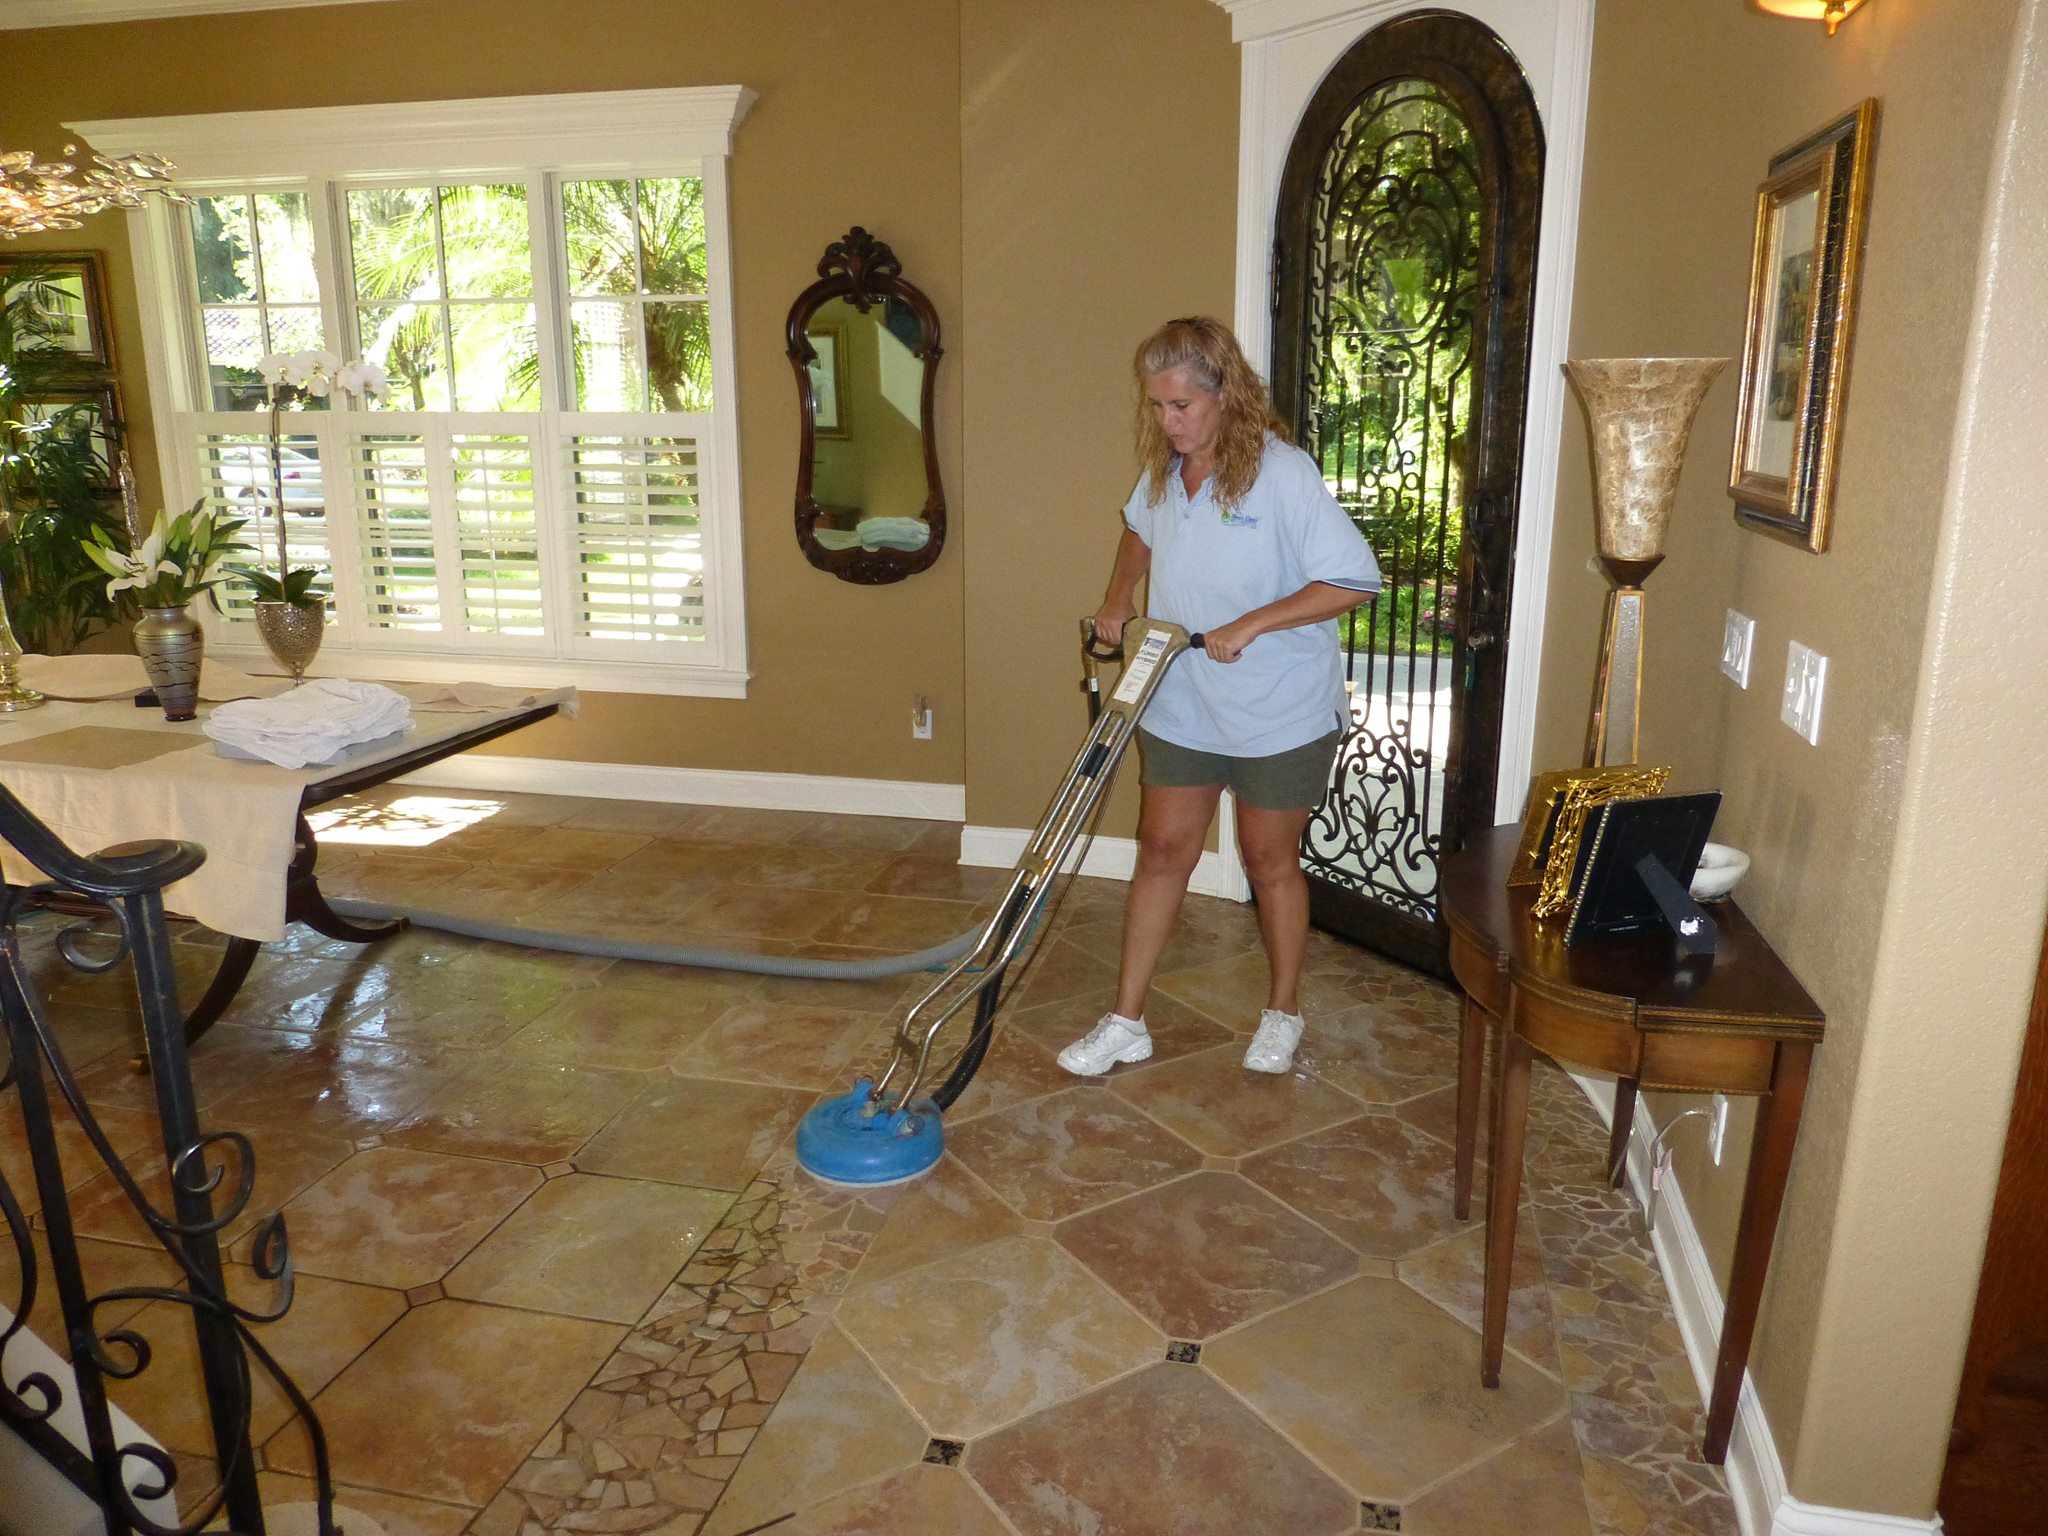 Tile Cleaning Amp Grout Cleaning Orlando Fl Amp Central